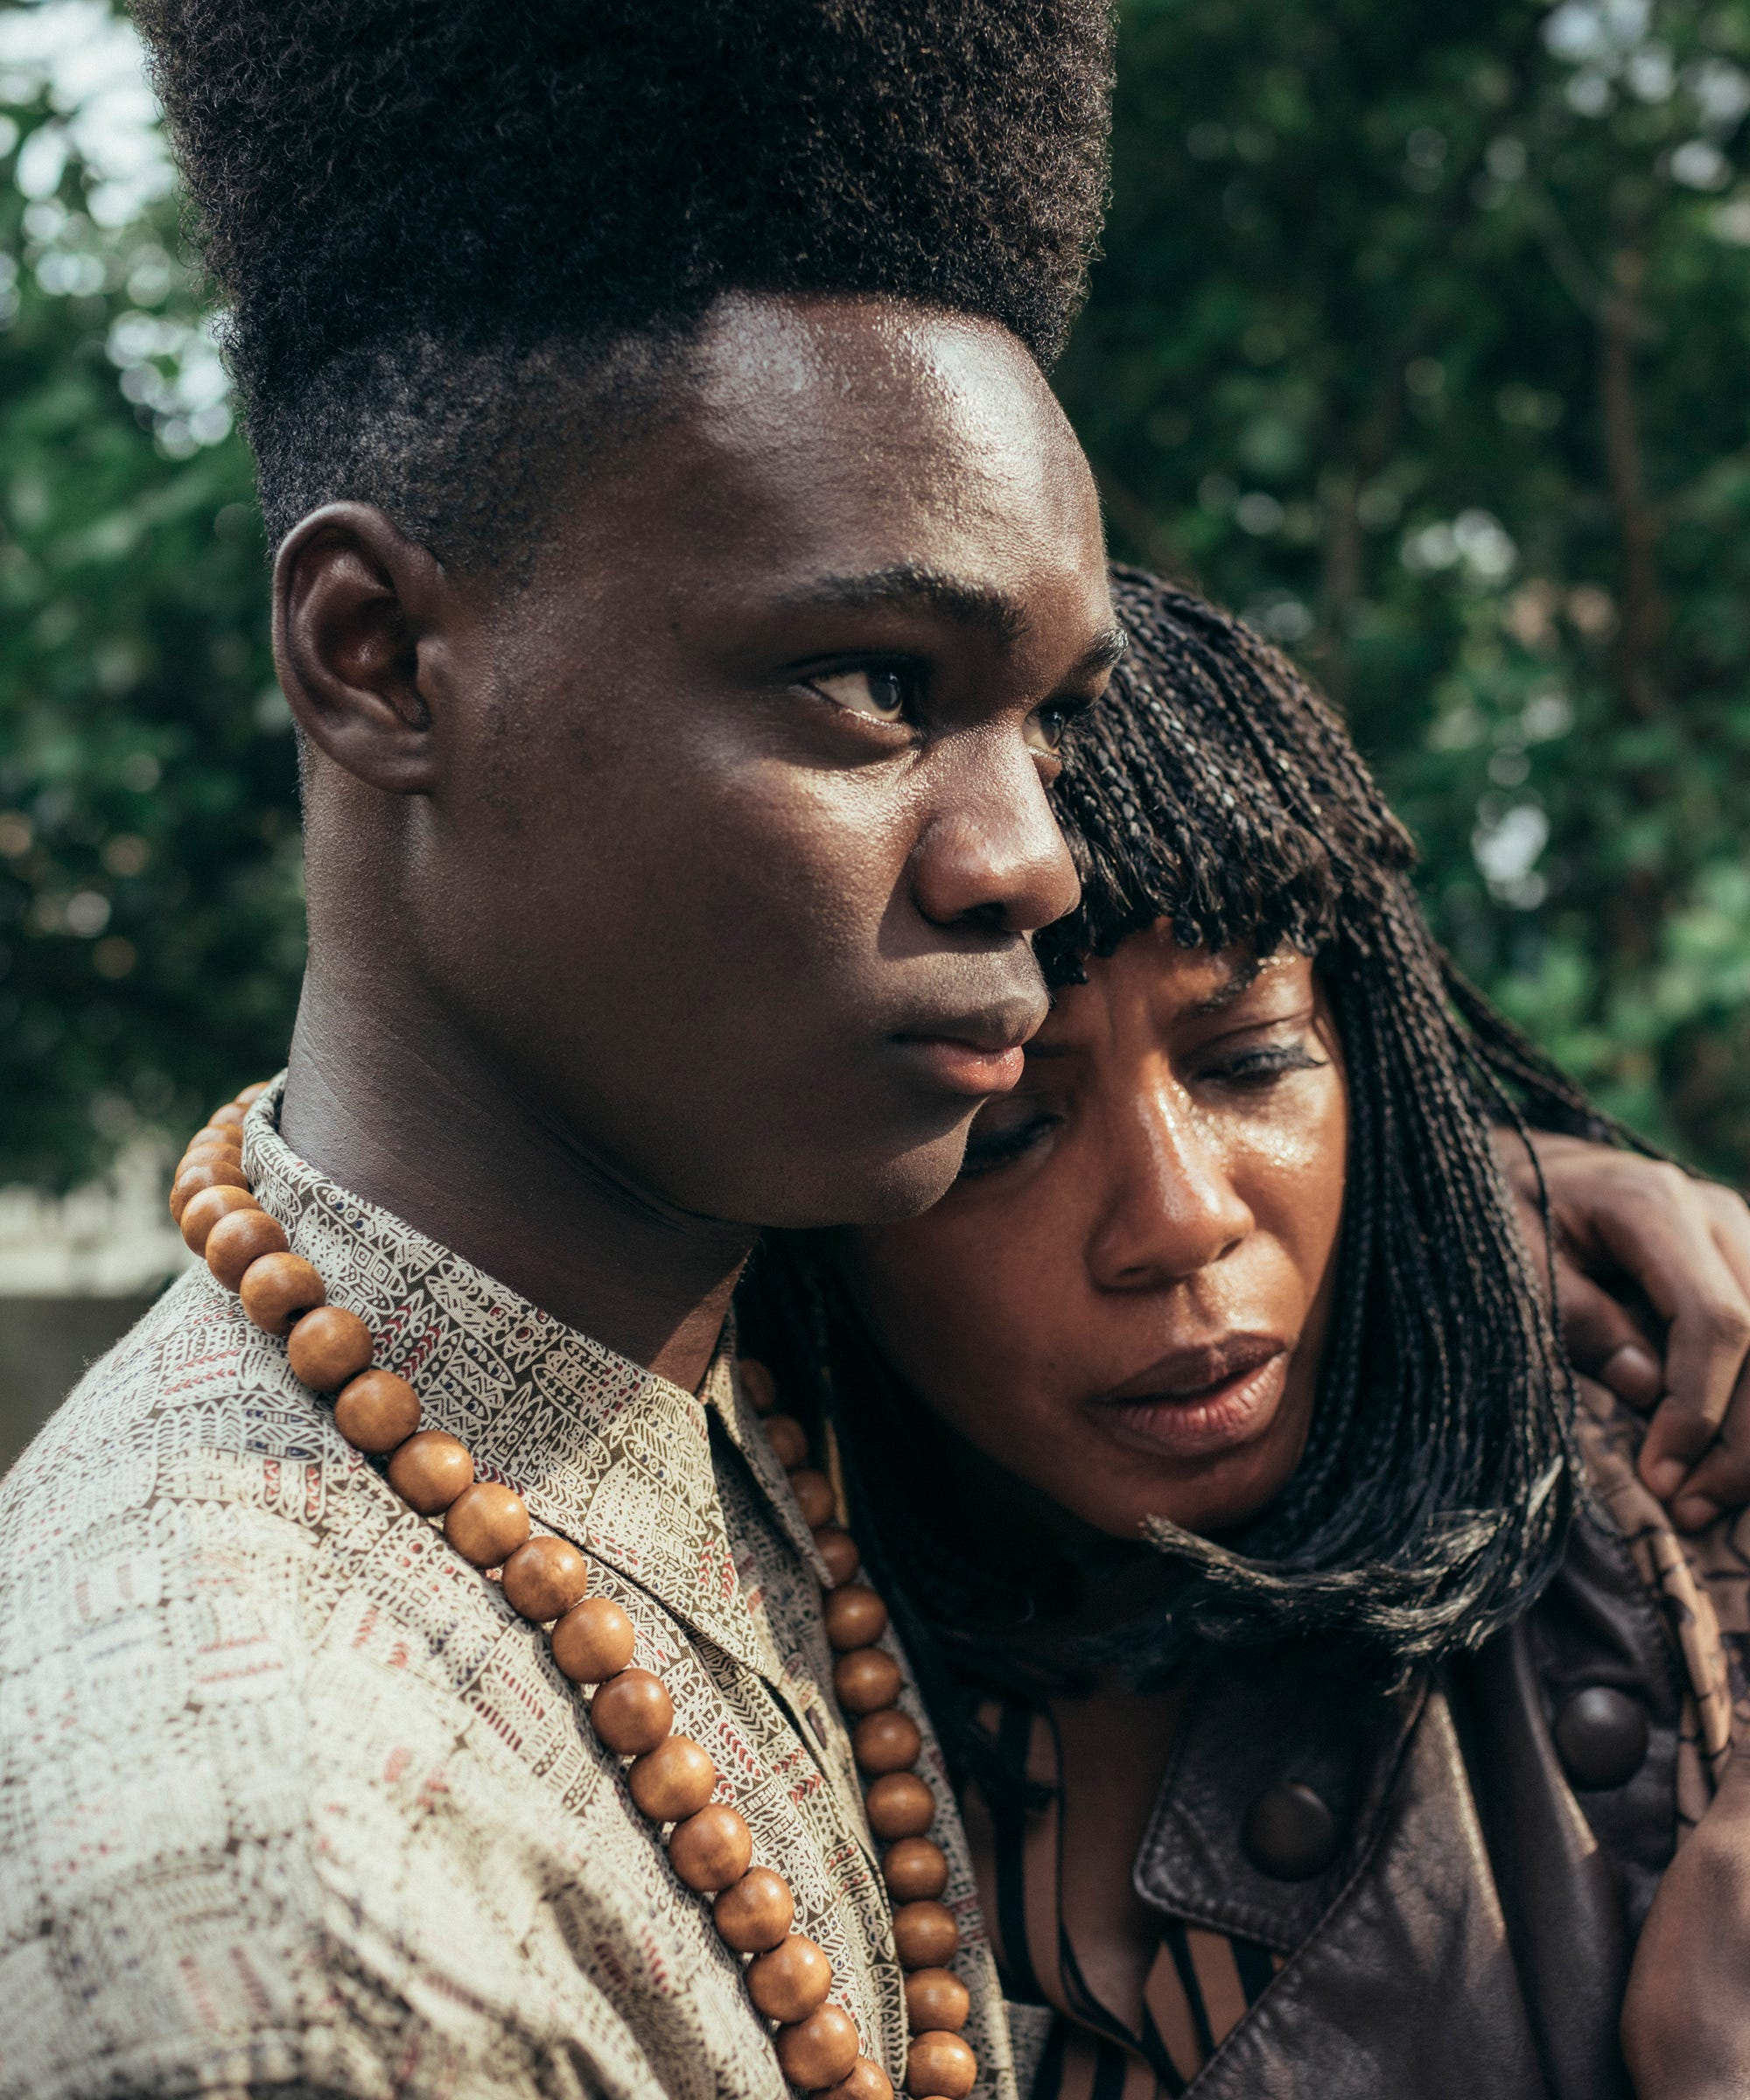 The Trailer For Ava DuVernay's When They See Us Will Give You Chills